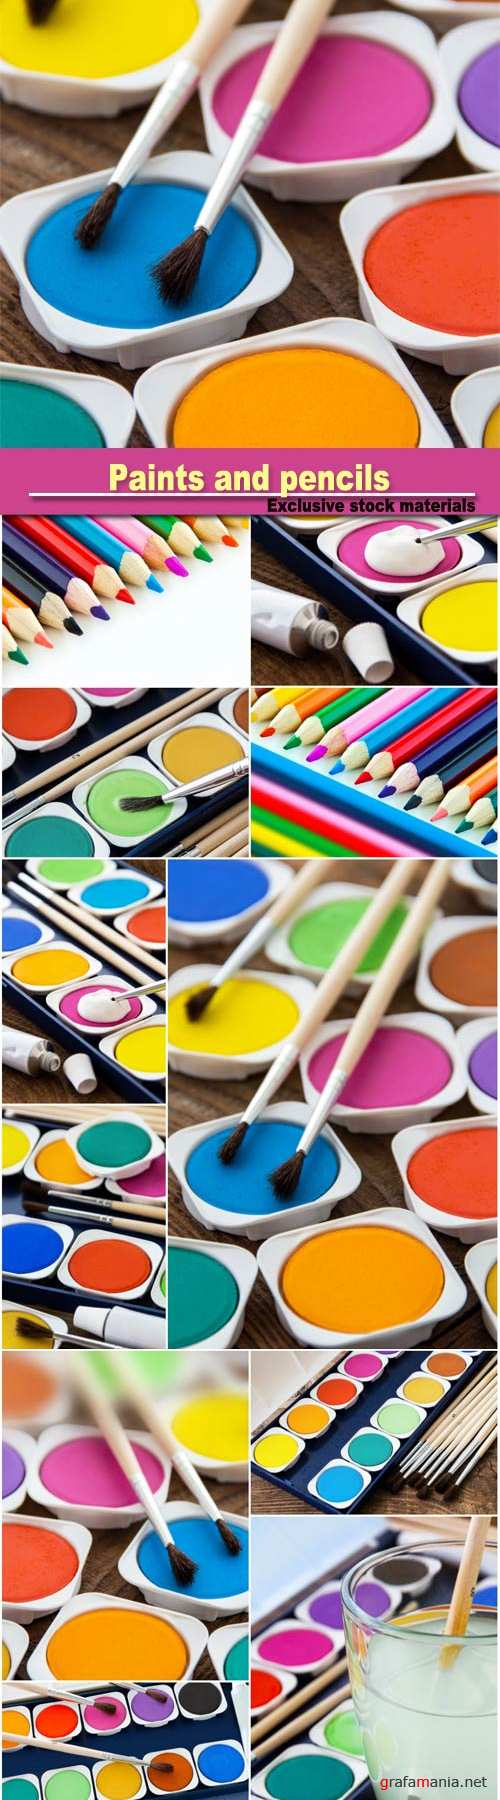 Paints and pencils, art, painting